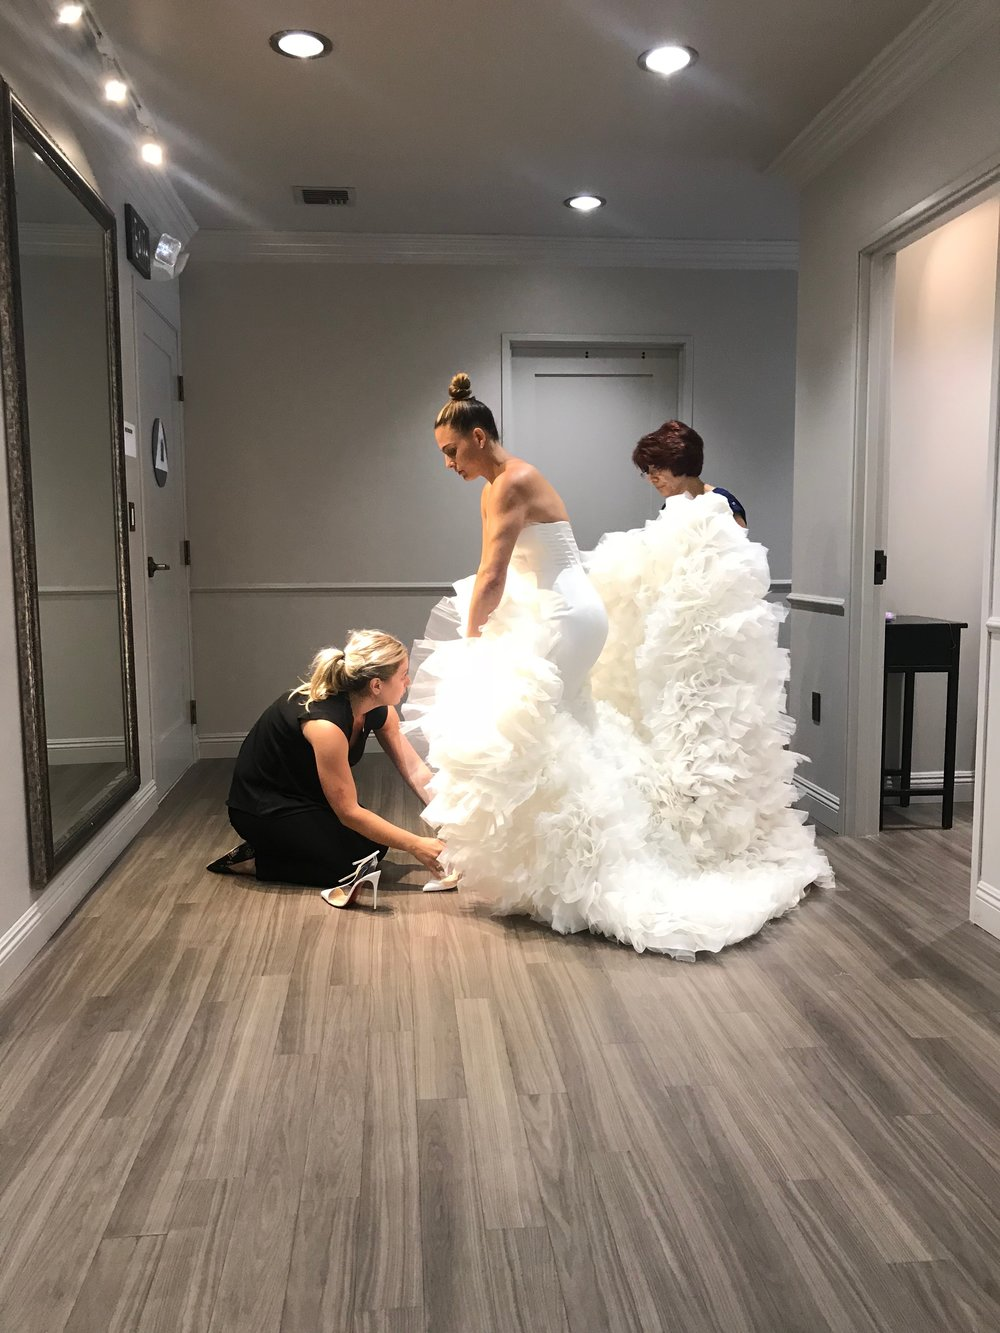 Las Vegas Wedding Planner shares a behind the scenes image of a bride being fit for her wedding dress.